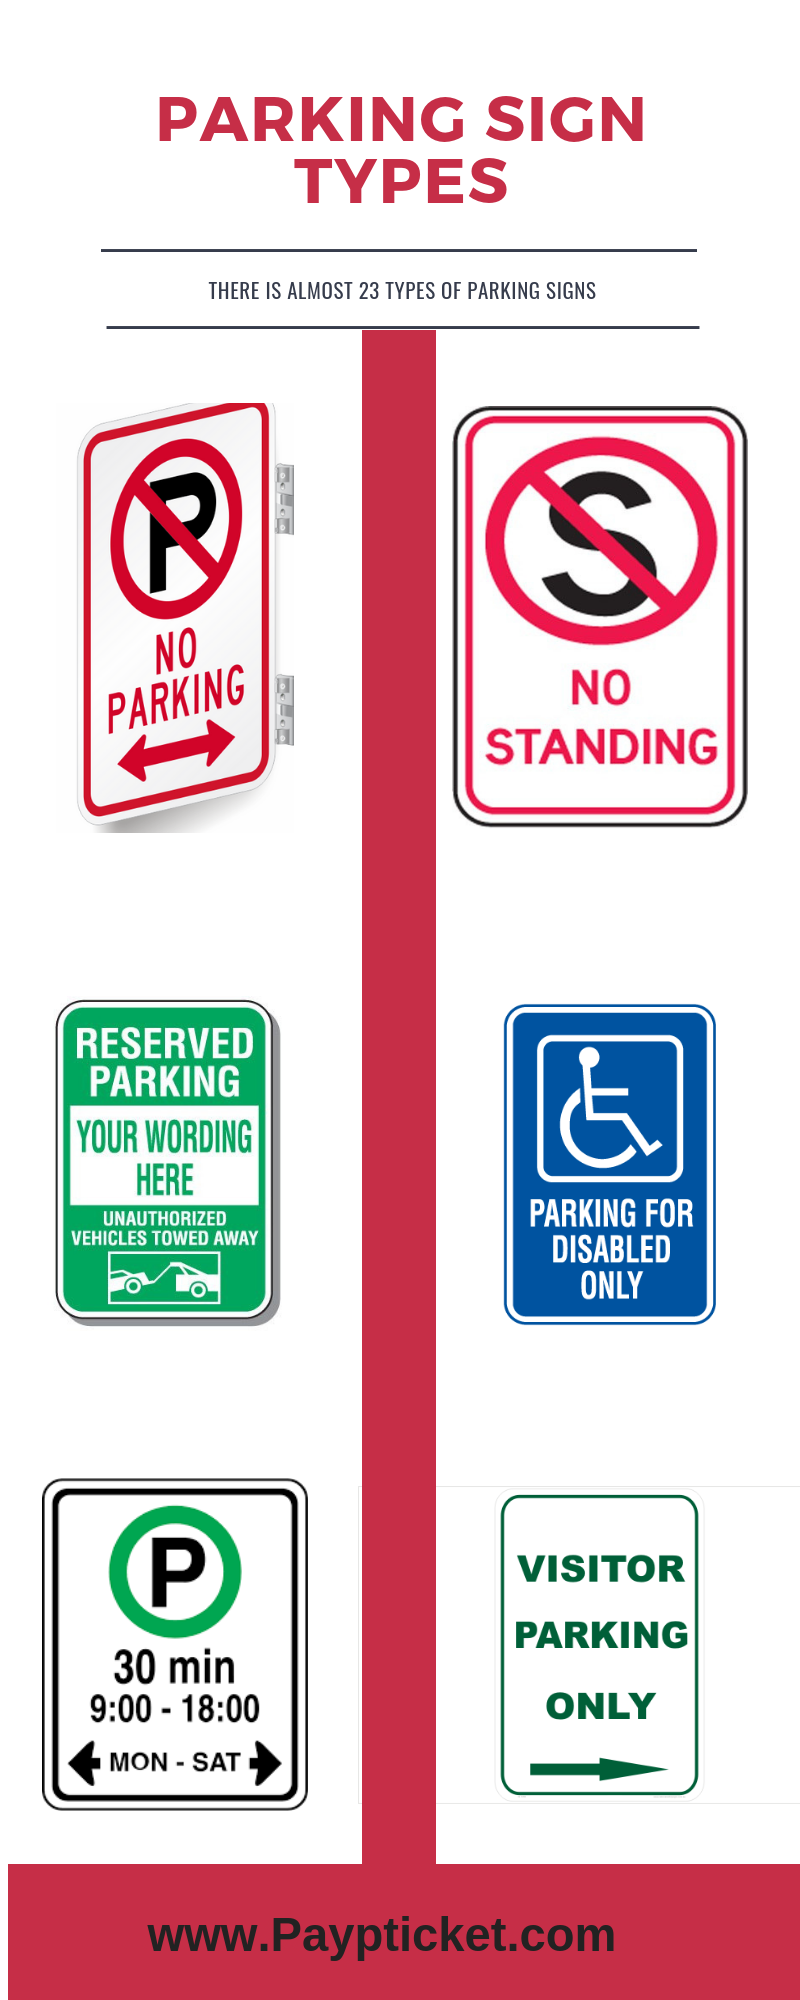 No Parking Signs Types